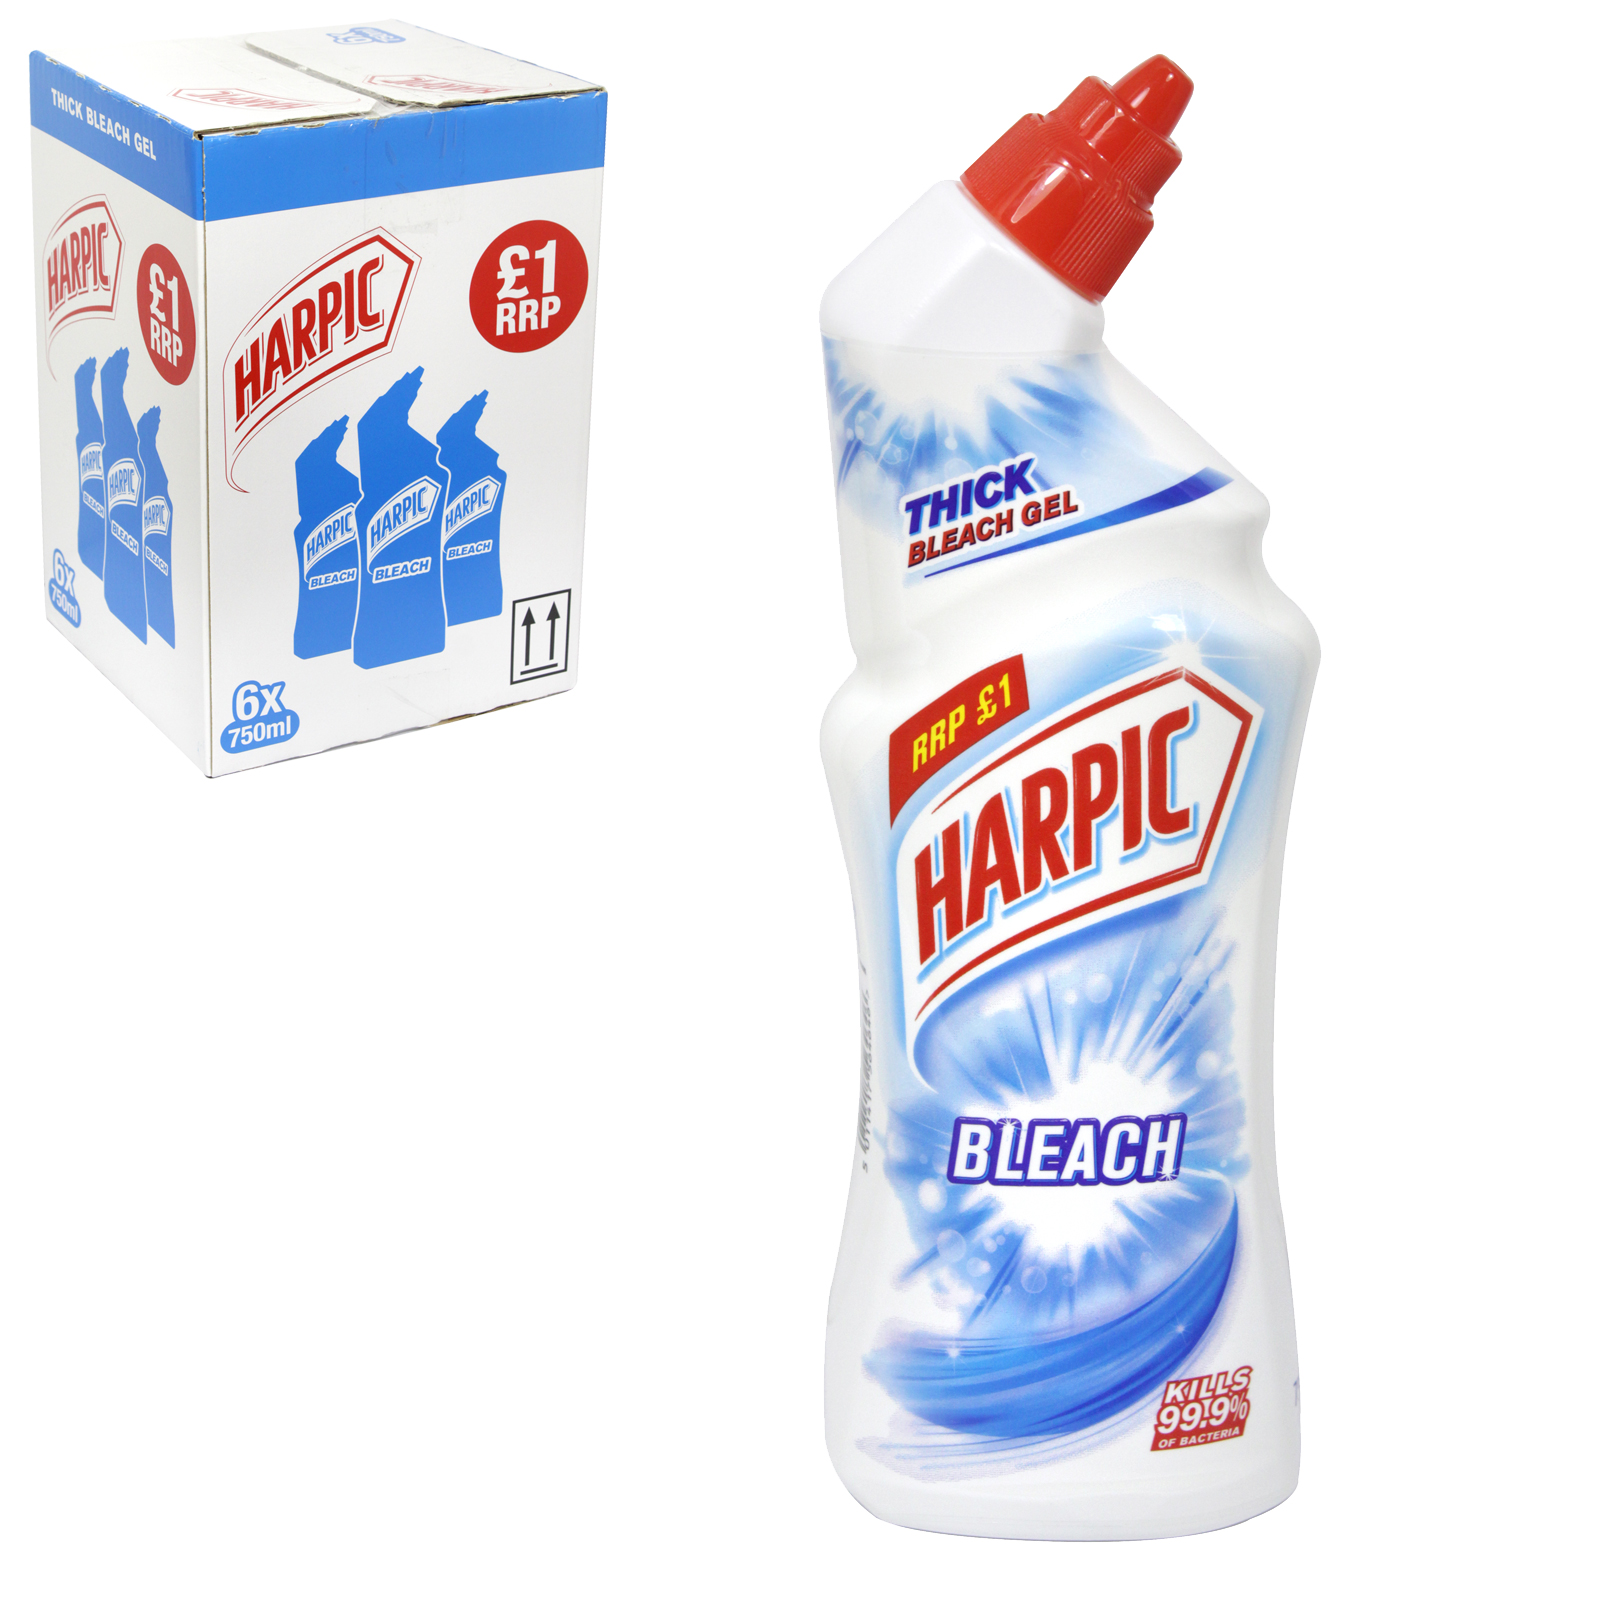 HARPIC BLEACH 750ML THICK GEL PM£1 X6